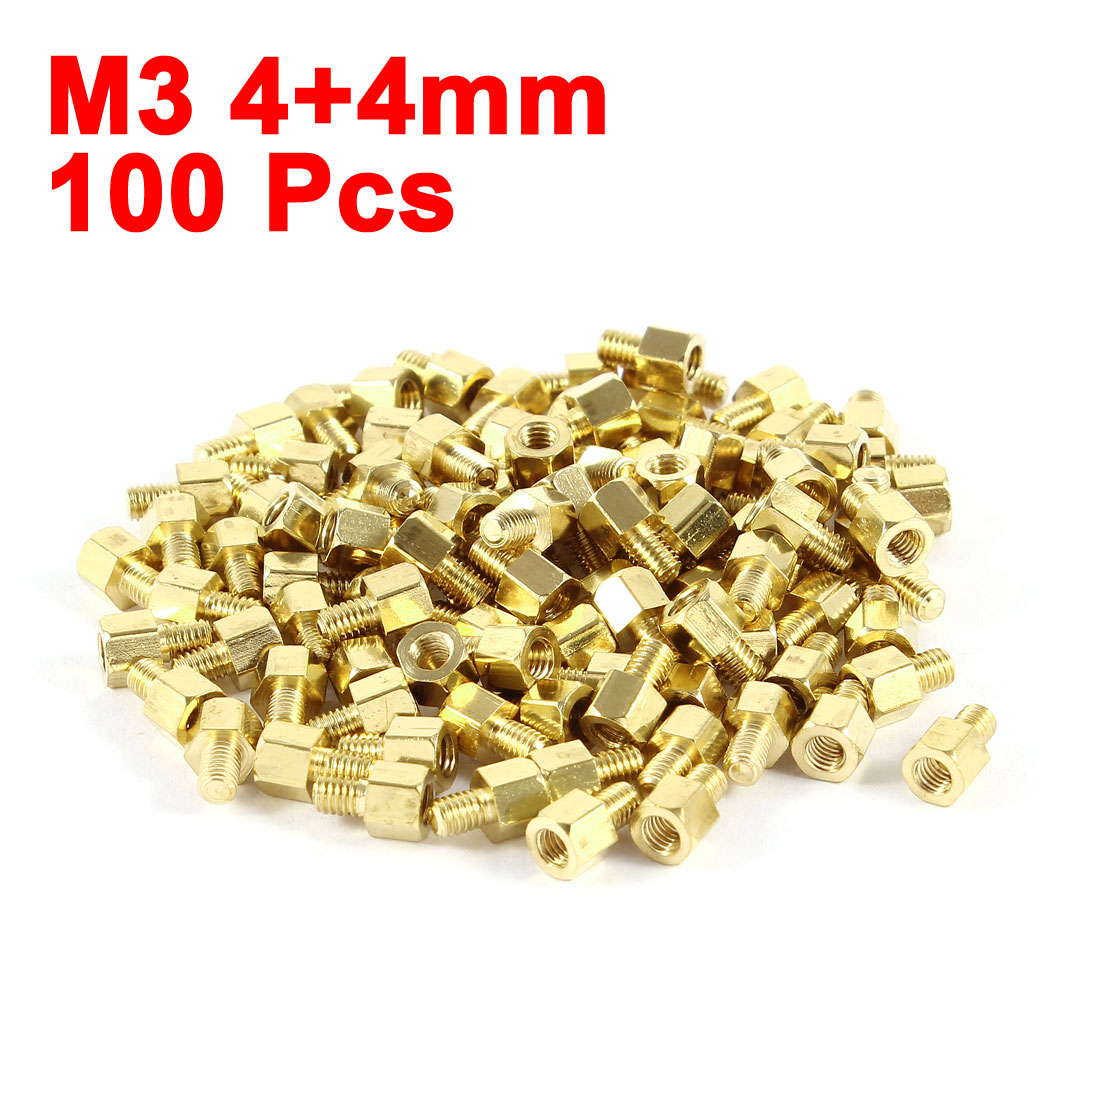 UXCELL 100 Pcs Brass Hex Standoff Spacer <font><b>M3x4mm</b></font> Female To <font><b>M3x4mm</b></font> Male M3 4+4Mm image